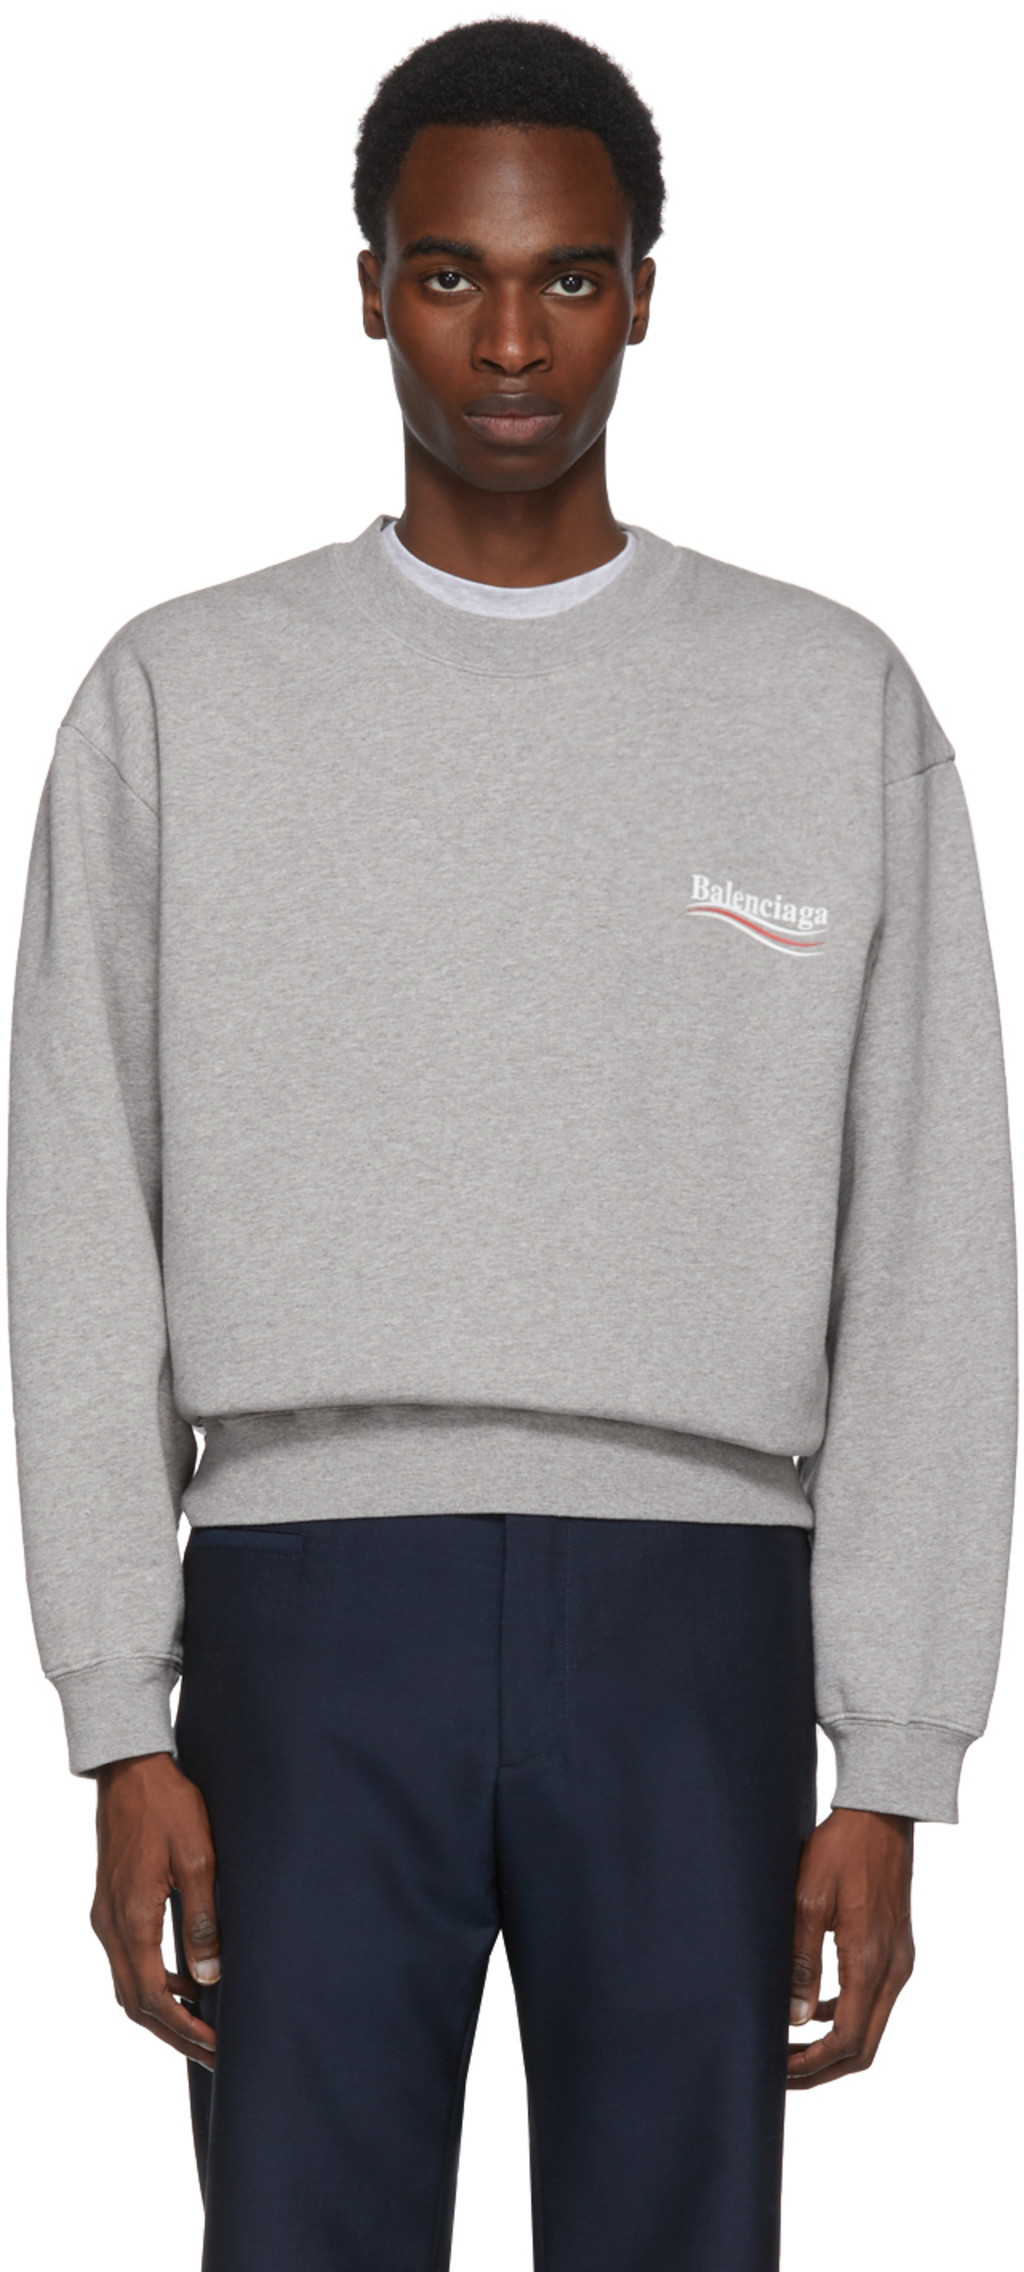 balenciaga sweater 2018